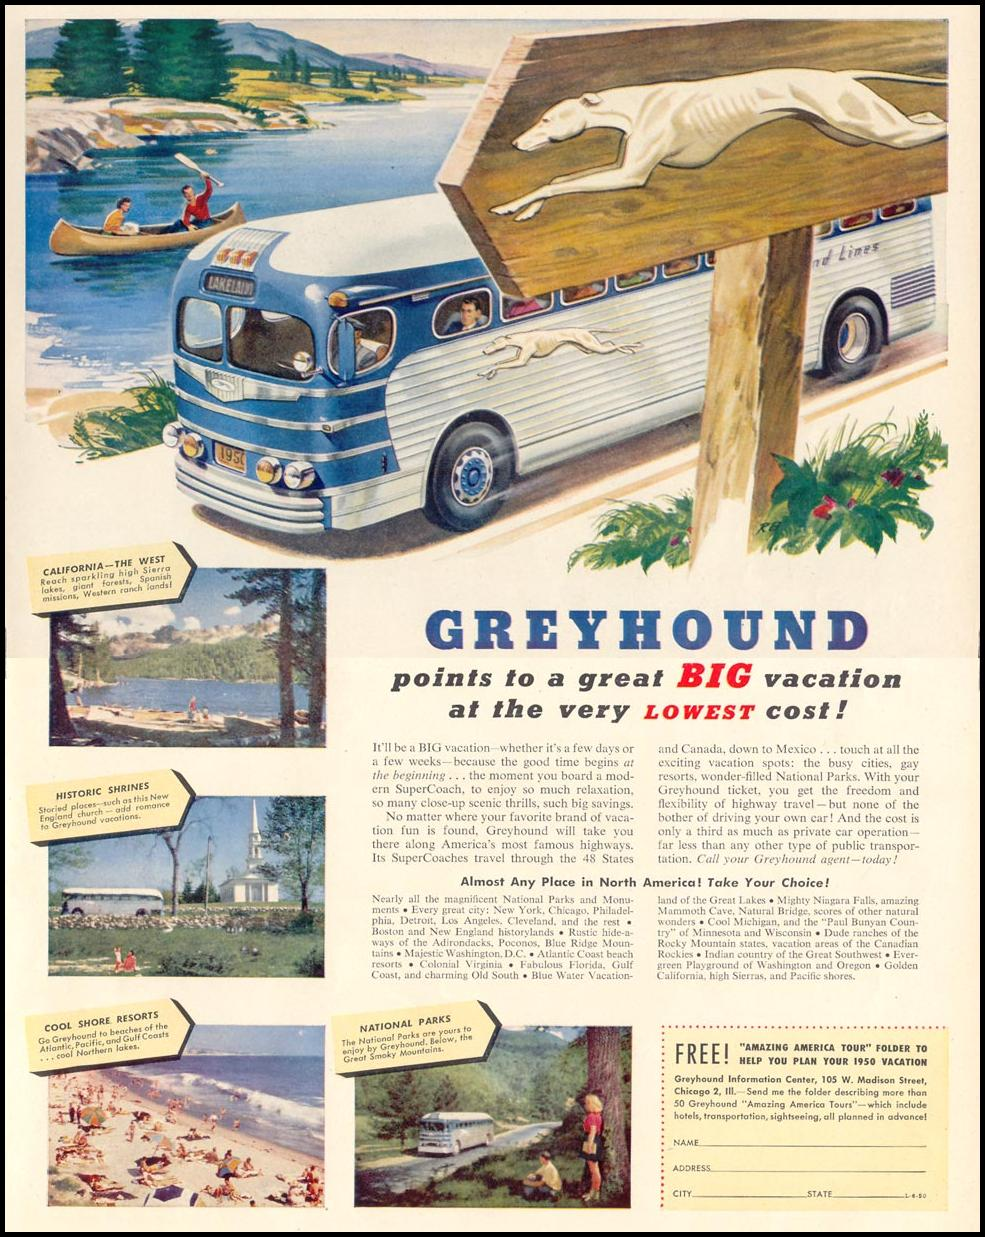 GREYHOUND BUS LINES LIFE 06/05/1950 p. 83